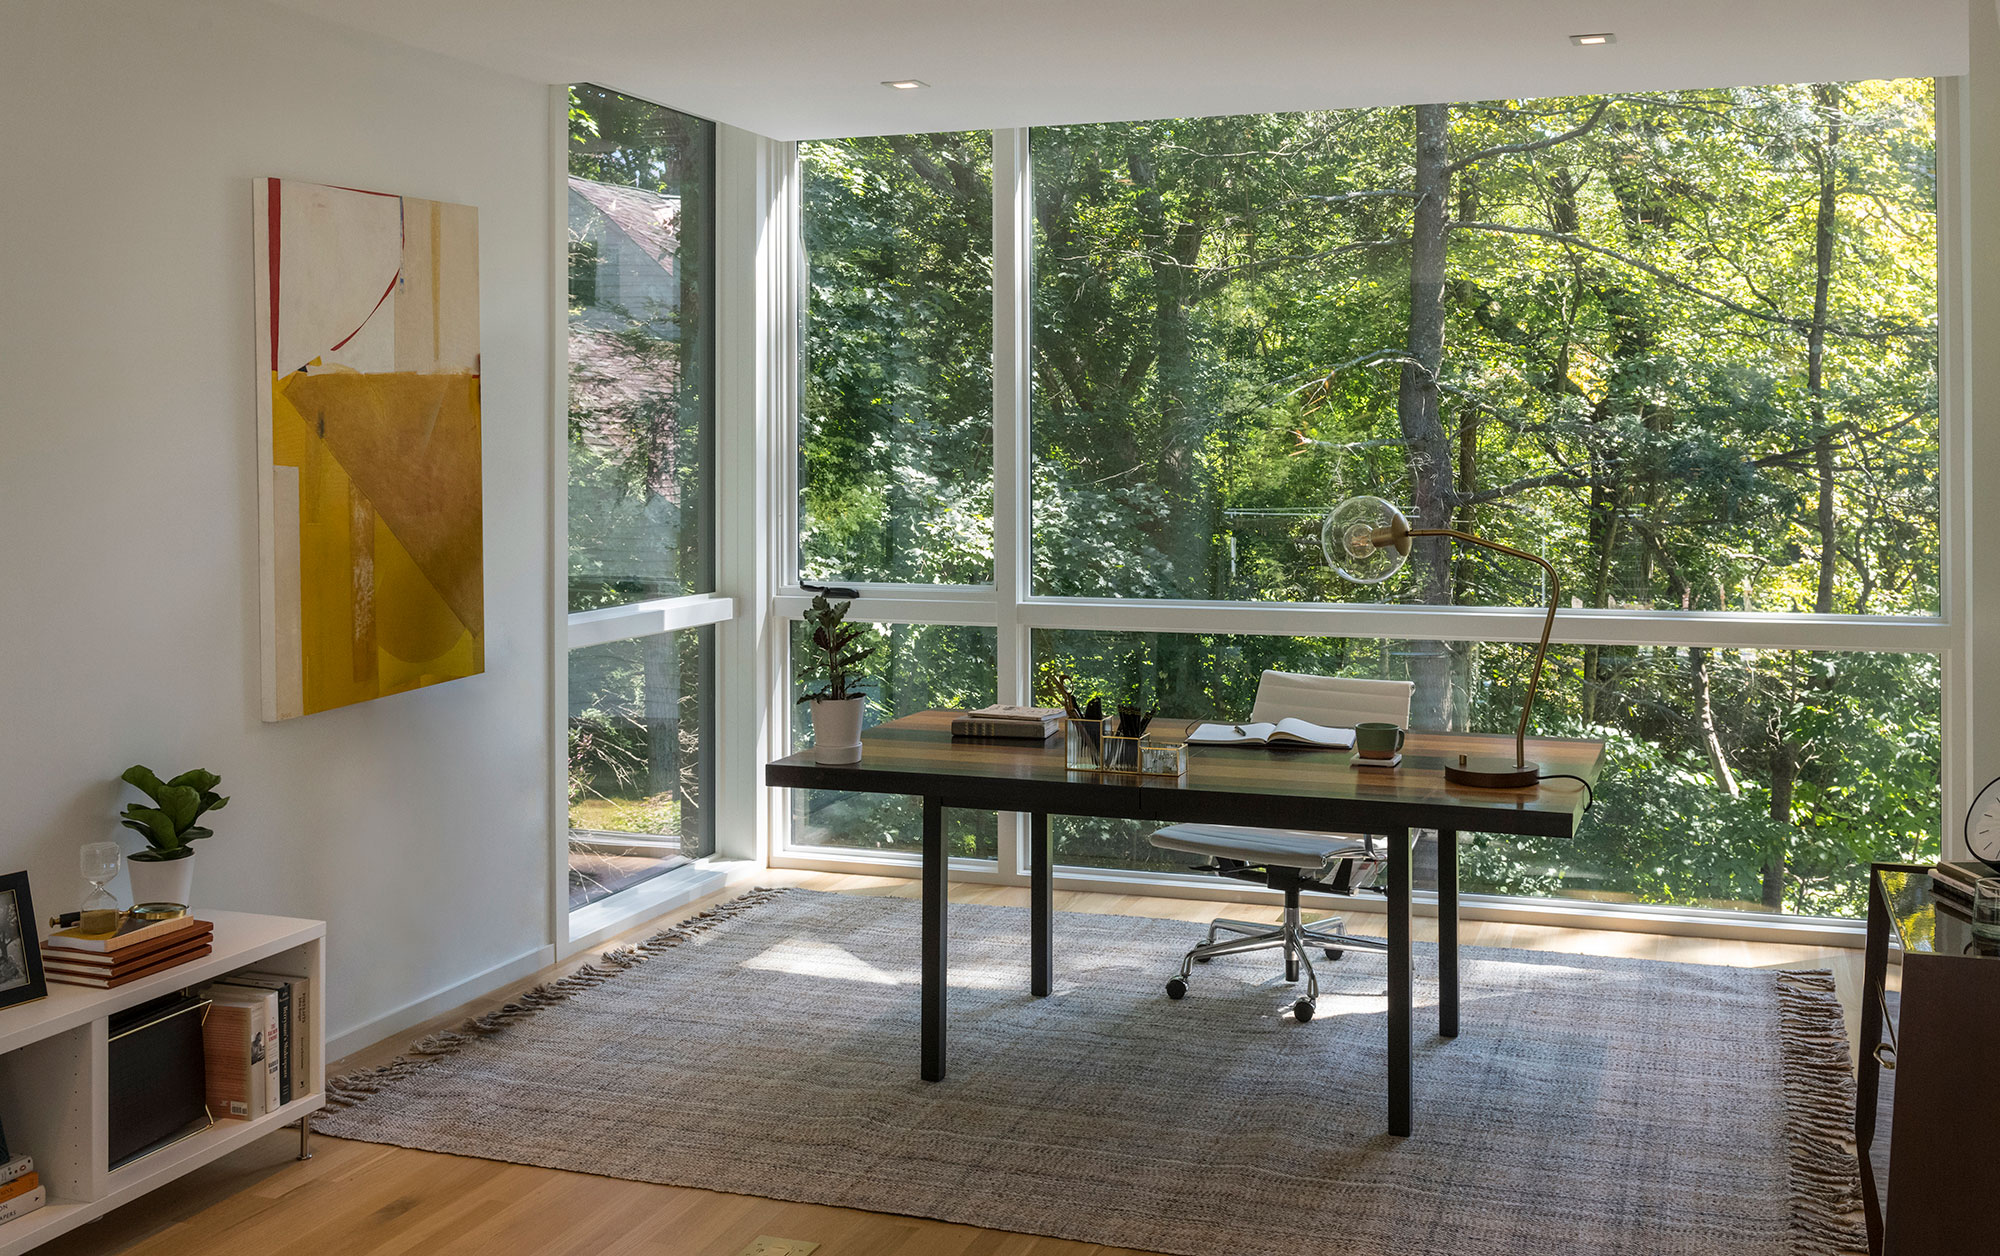 home office interior with forest view through large windows